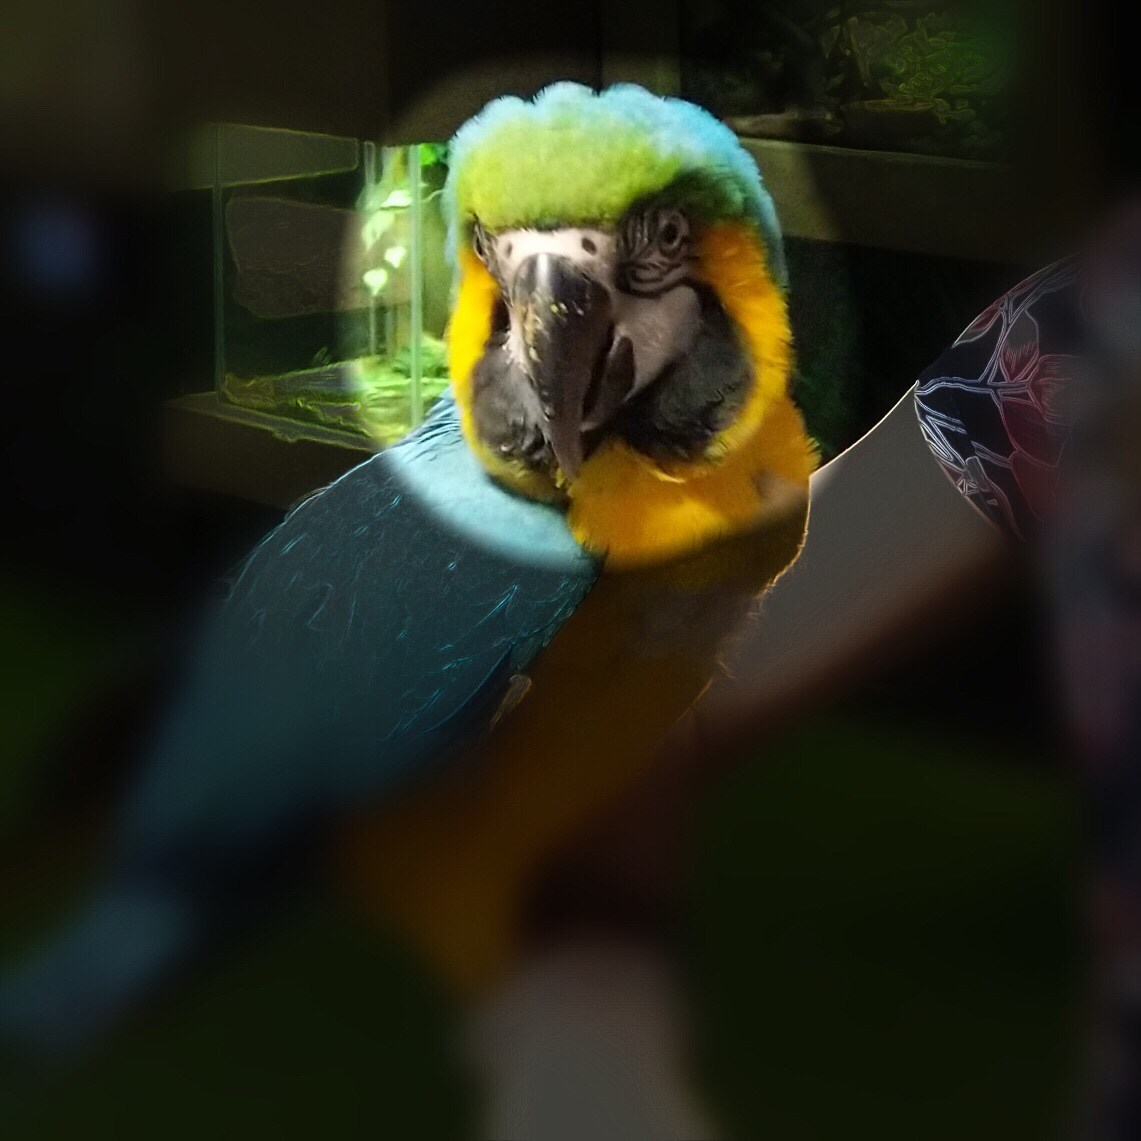 A colorful parrot on Veronica's arm; the parrot's head is shown but the rest of the photo is blacked out.